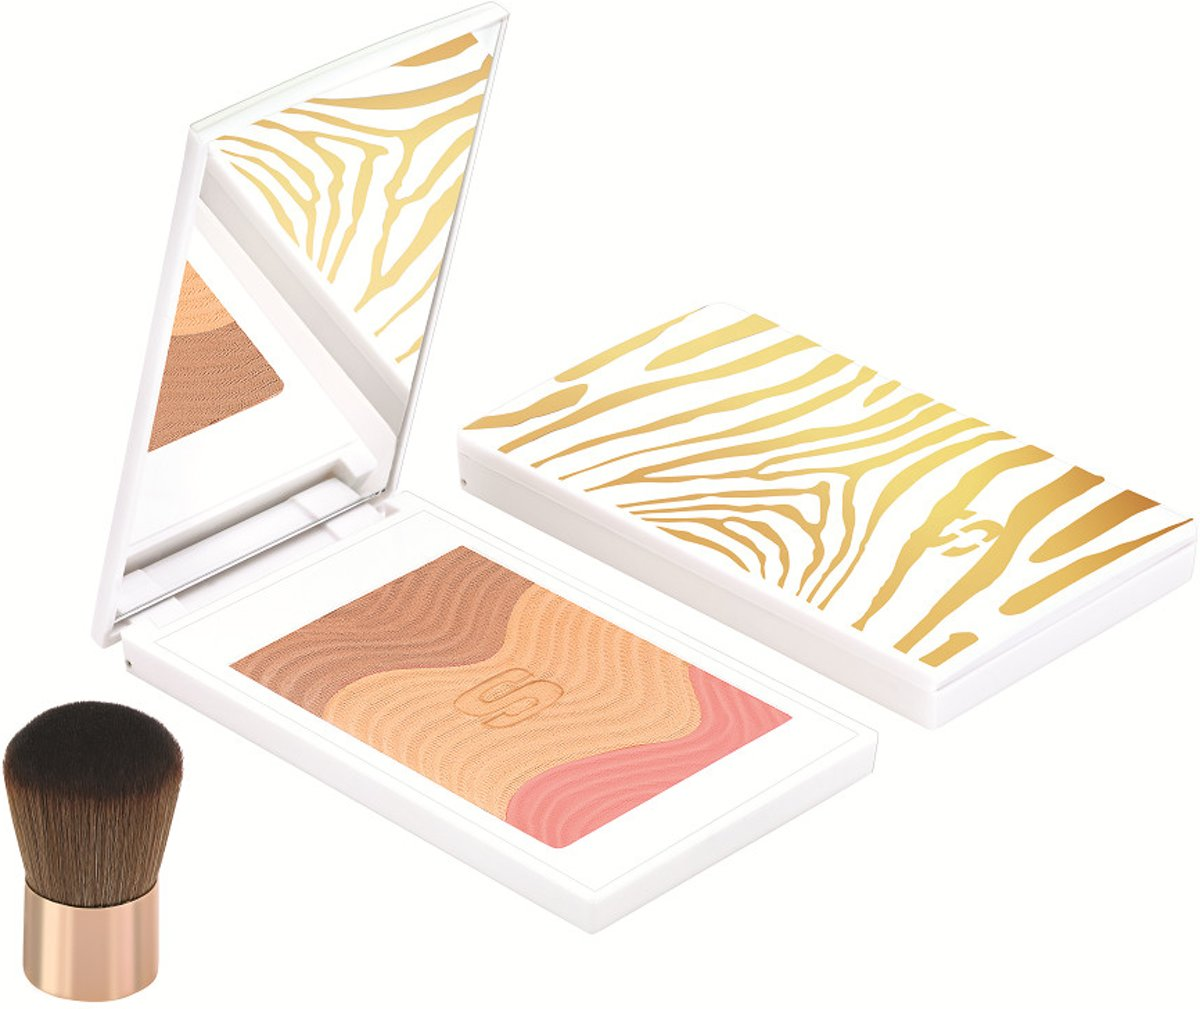 Sisley Phyto-Touche Sun Glow Powder - Peche Doree - Blush